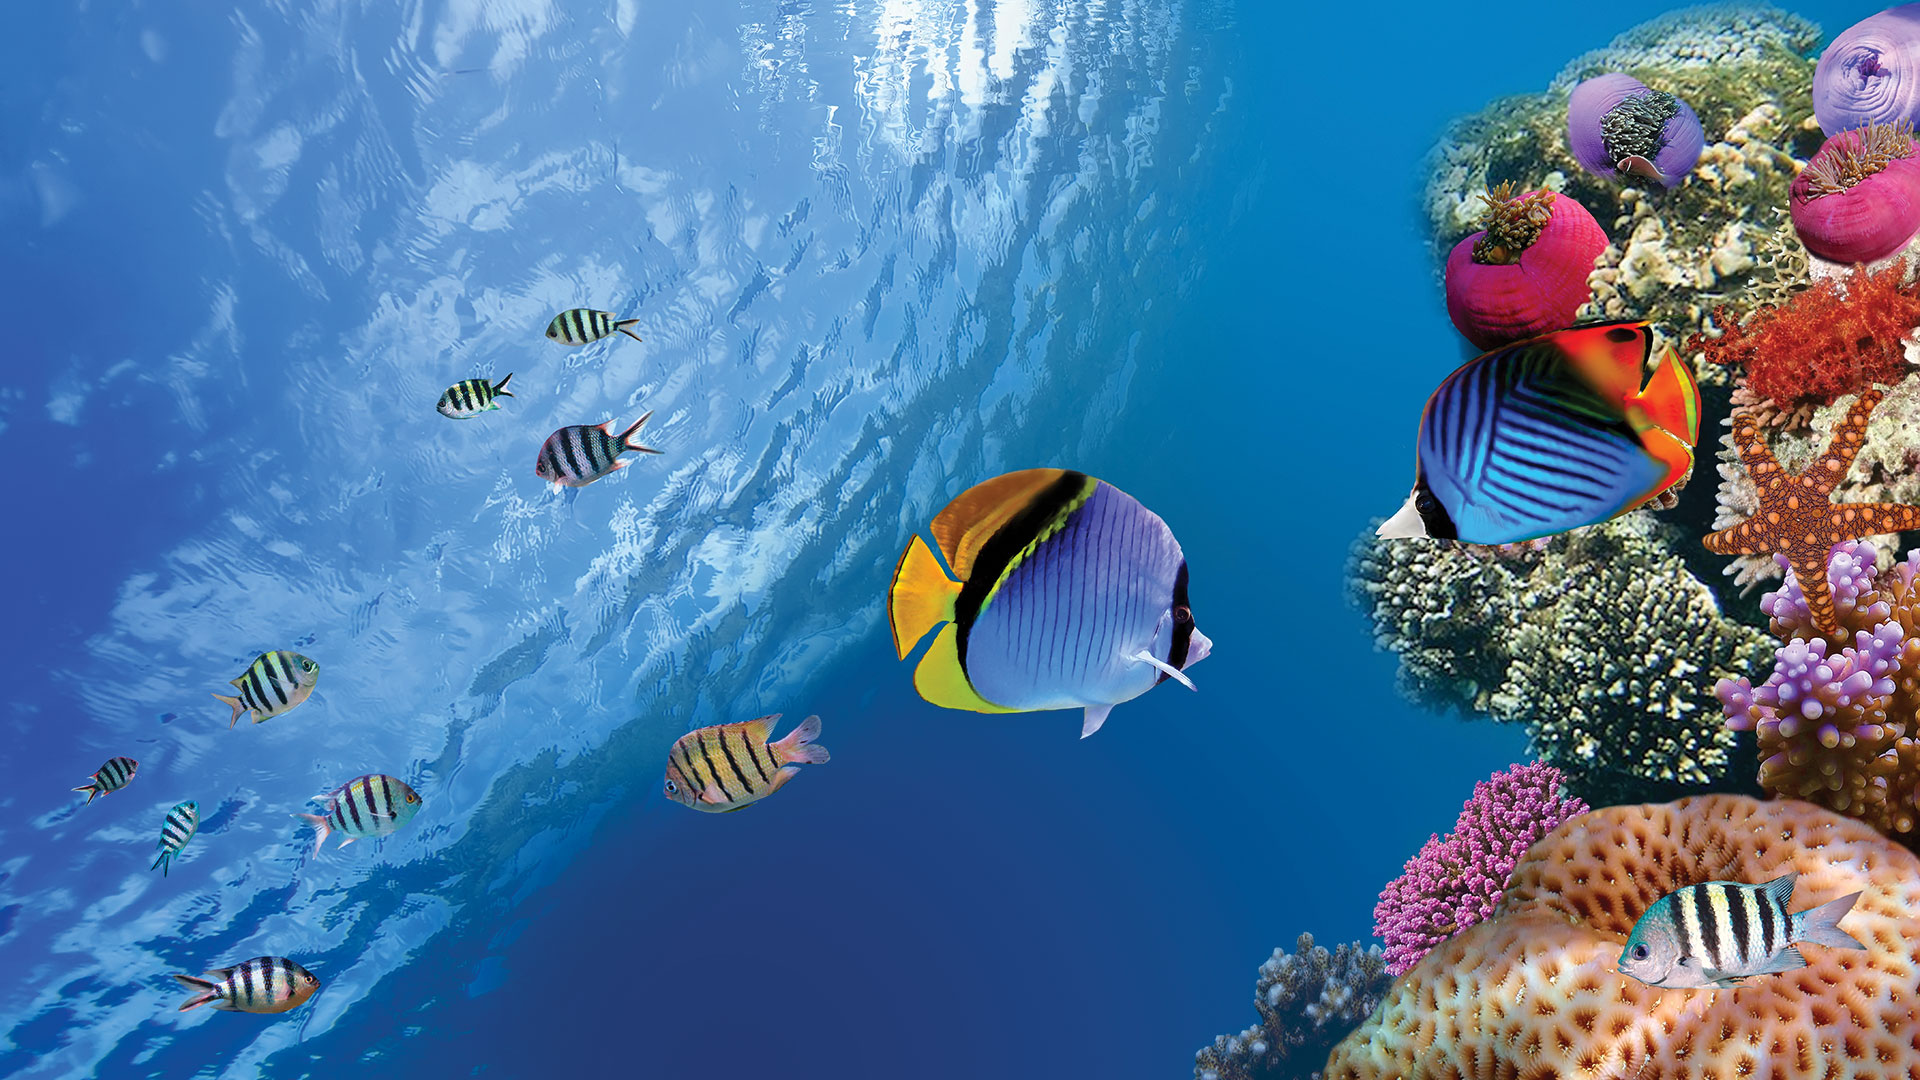 Fish in a reef